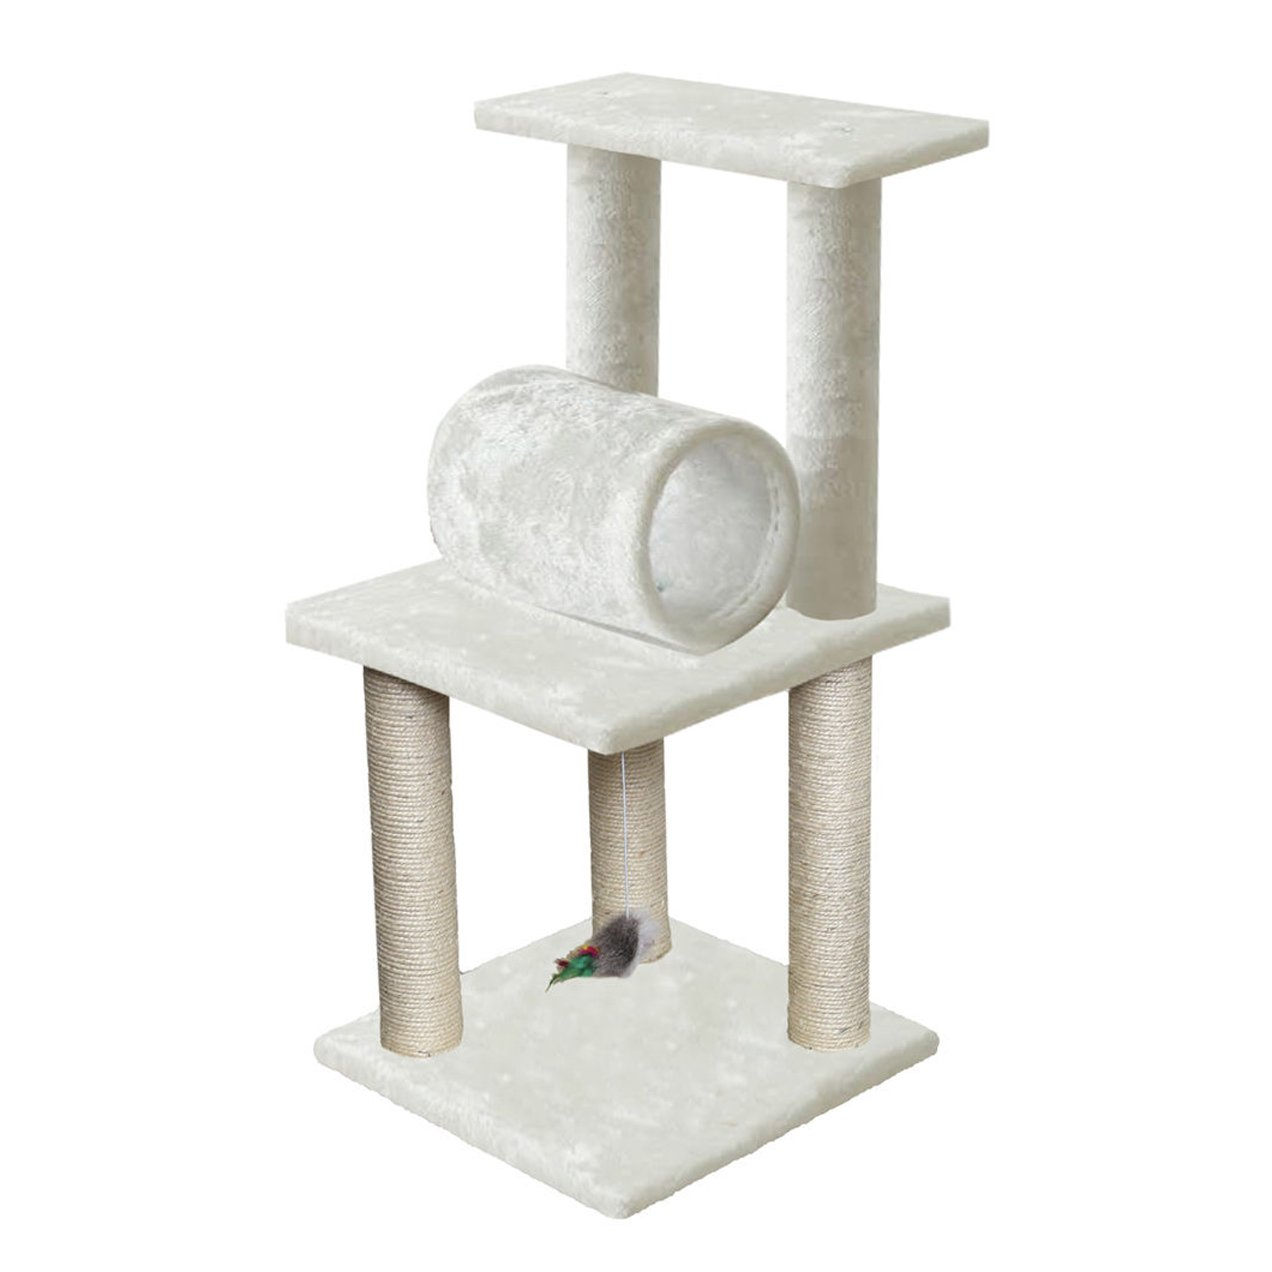 33 White Pet Cat Tree Play Tower Bed Furniture Scratch Post Tunnel Top Mouse toy notch by Unbranded by na (Image #3)